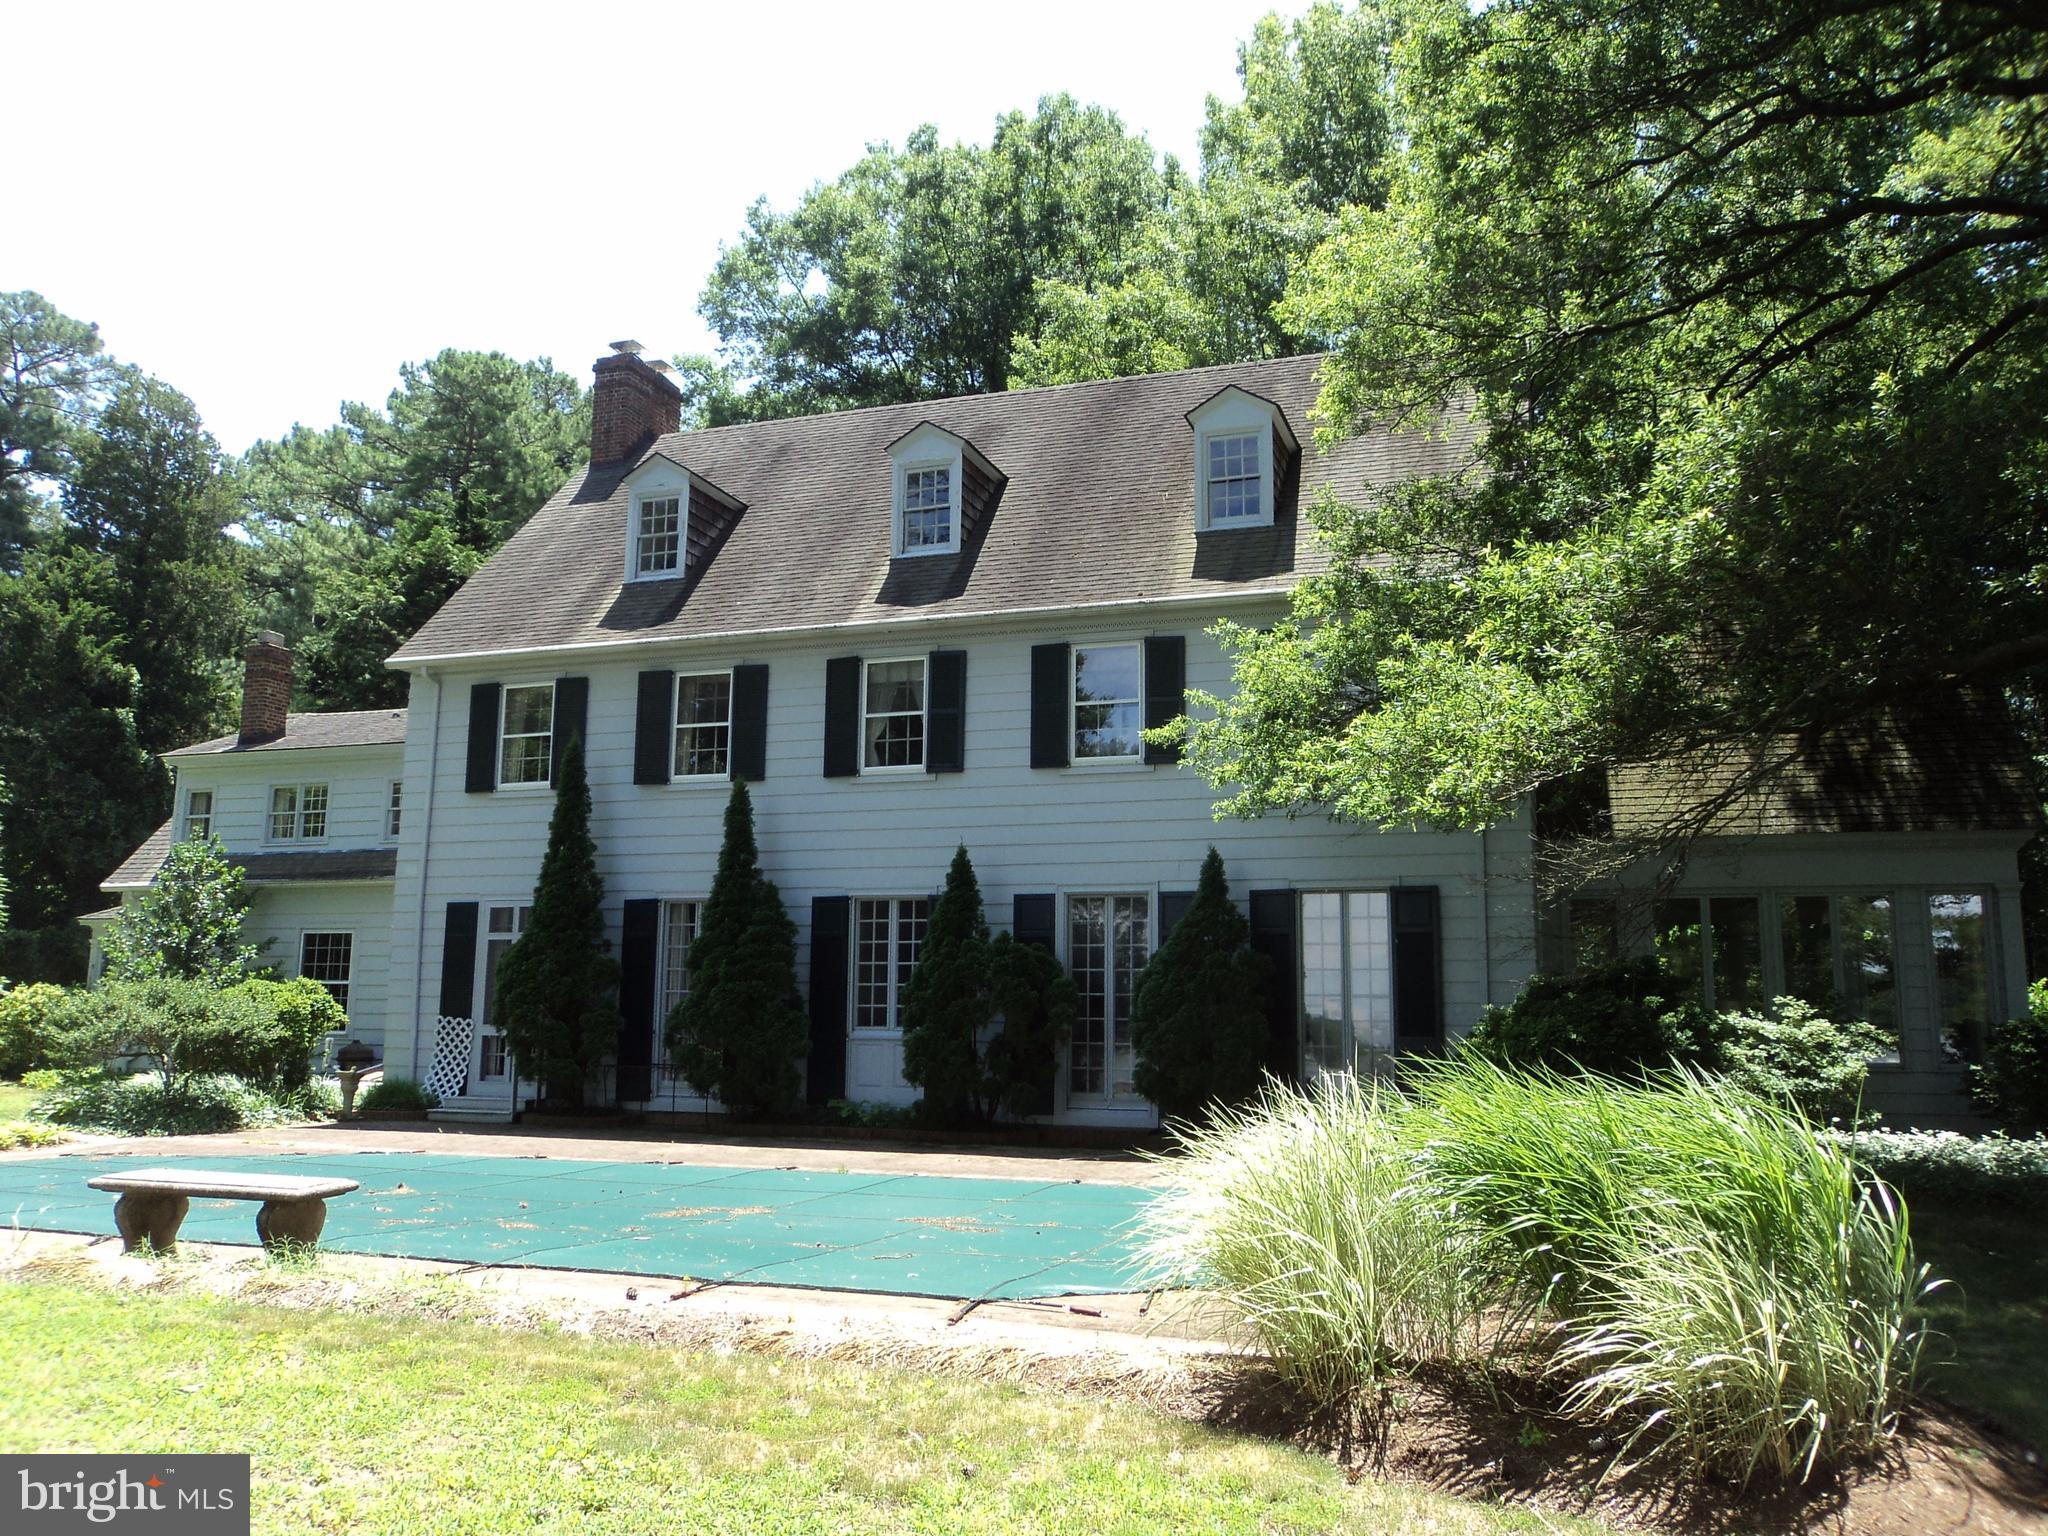 8620 DONCASTER ROAD, EASTON, MD 21601